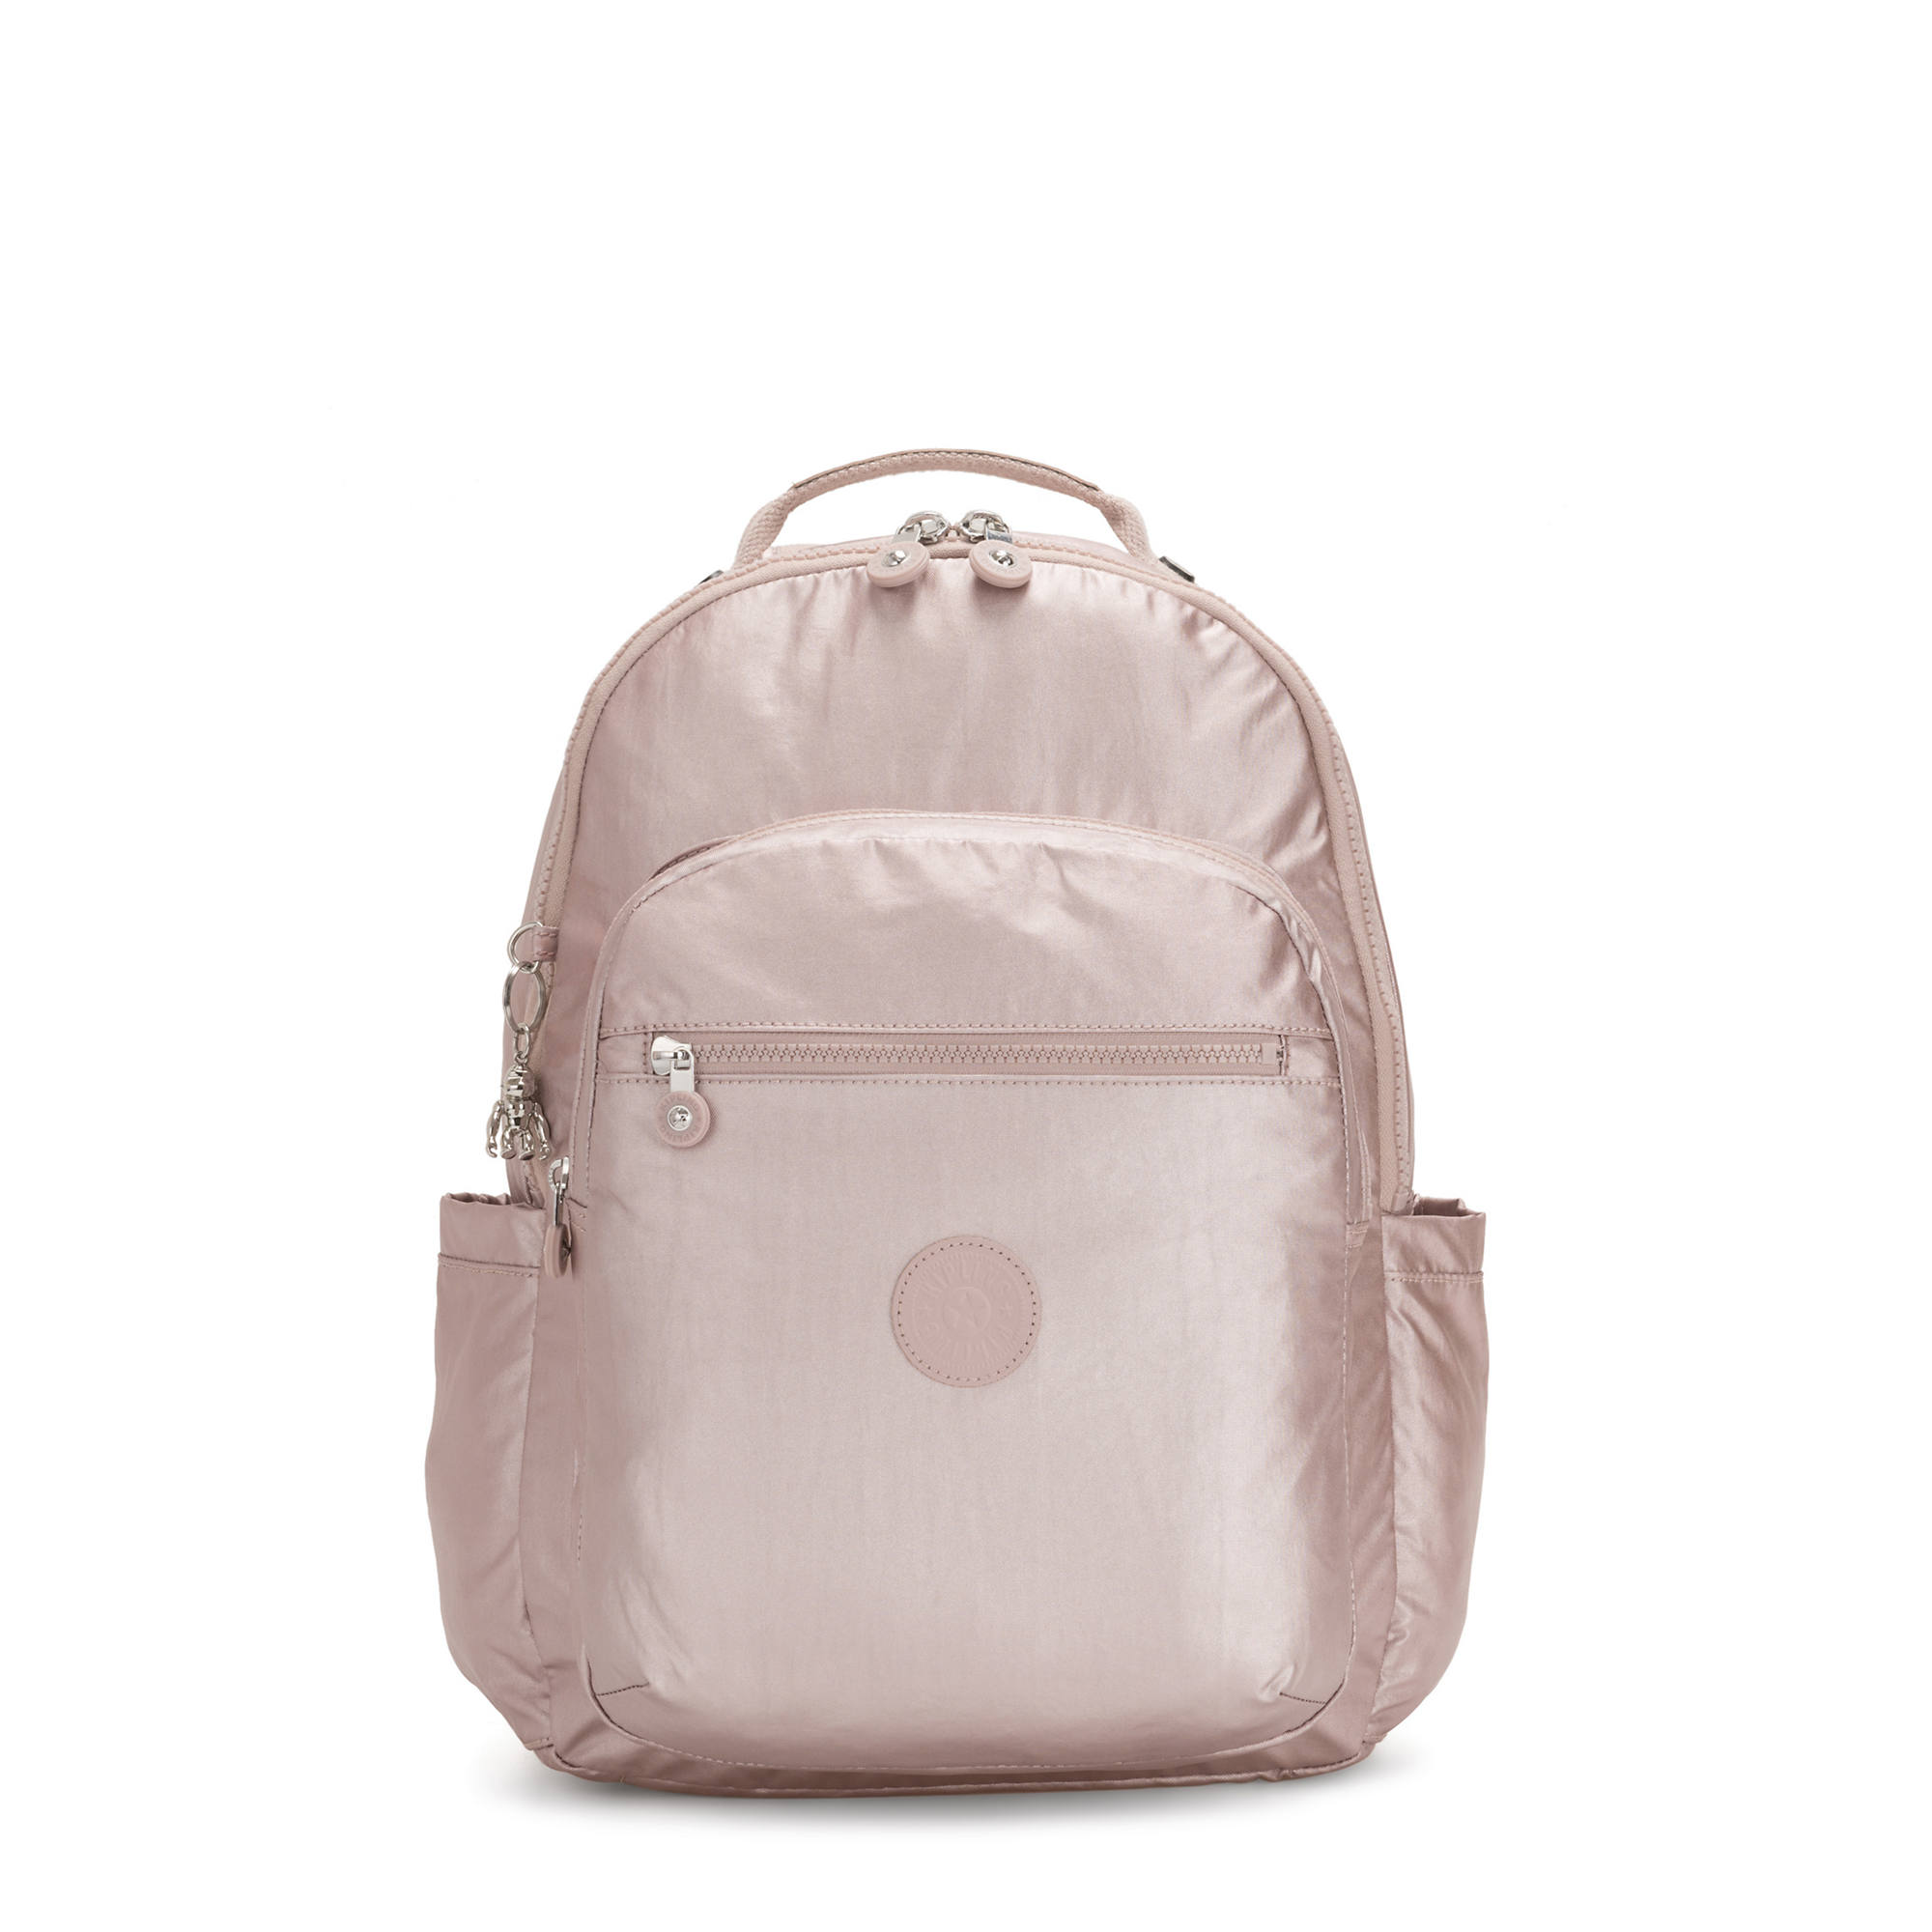 Seoul Baby Diaper Backpack,Metallic Rose,large-zoomed